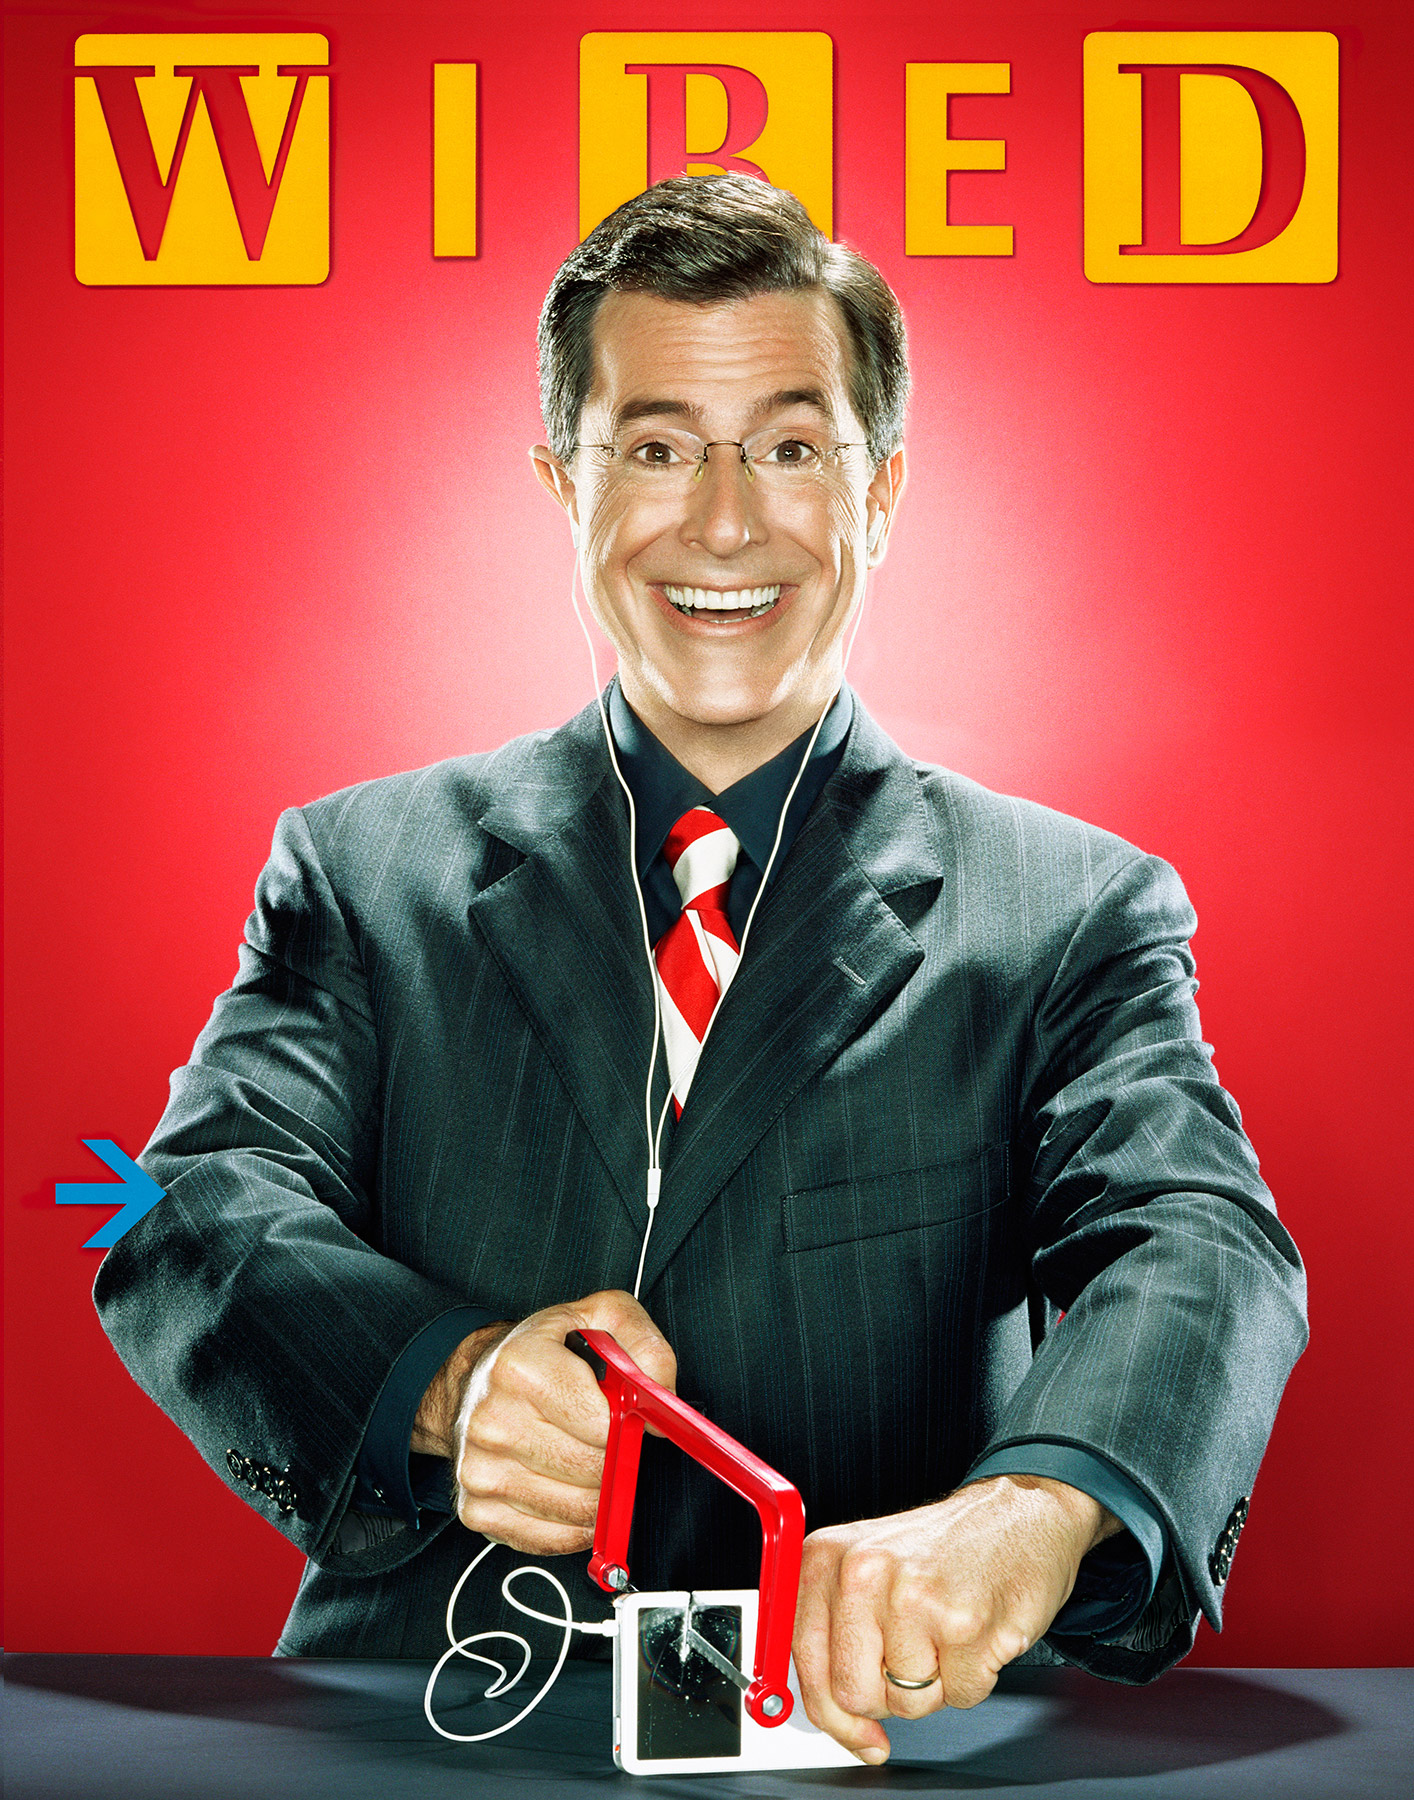 Wired - Stephen Colbert